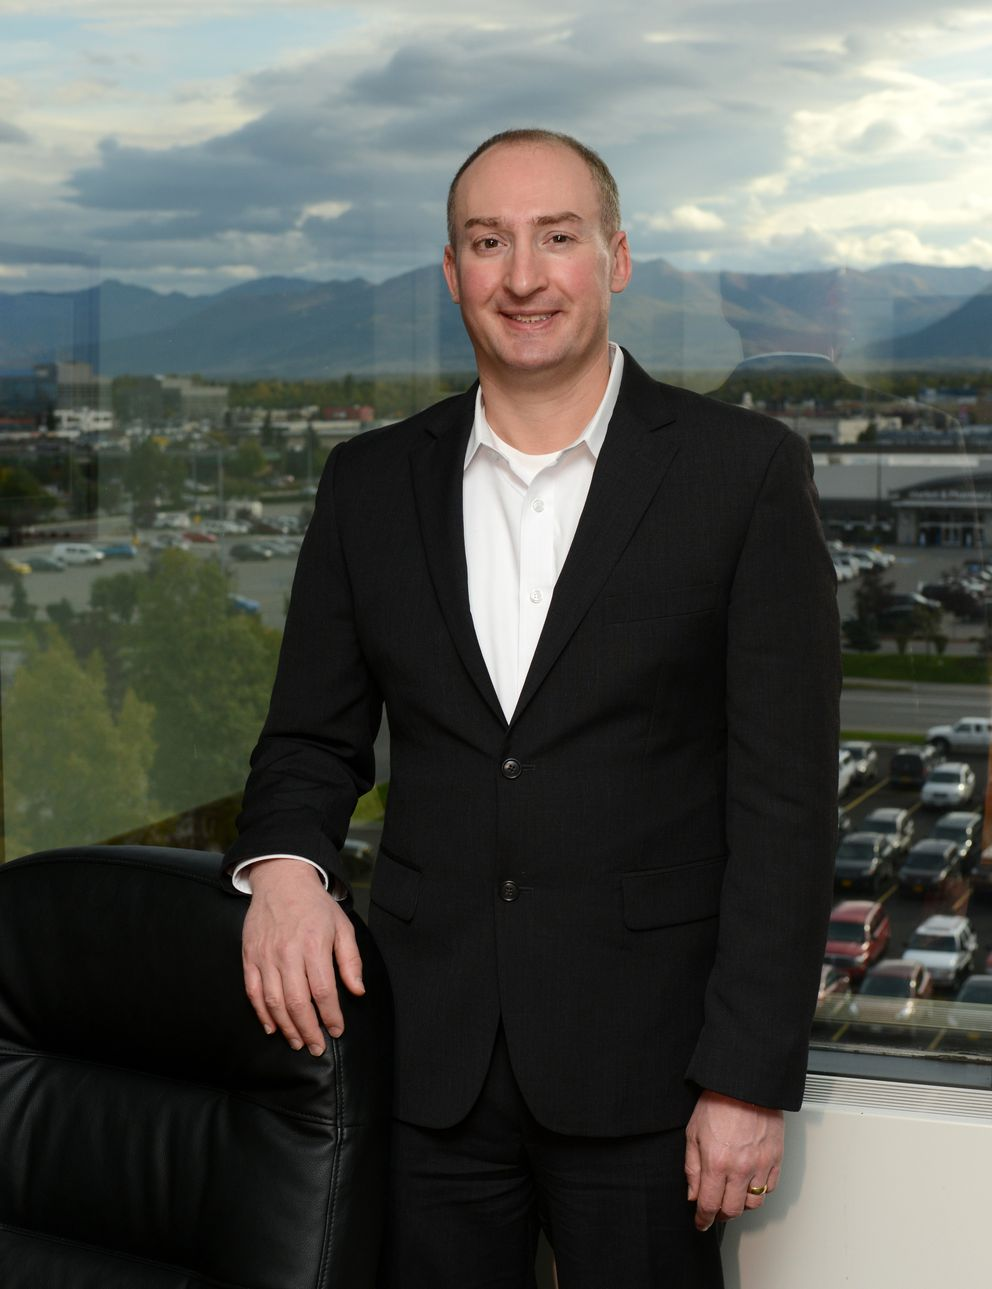 Joshua Weinstein is the head of RISQ Consulting, an Acrisure Agency Partner. Acrisure acquired Northrim Benefits Group in August. (Erik Hill / Alaska Dispatch News)